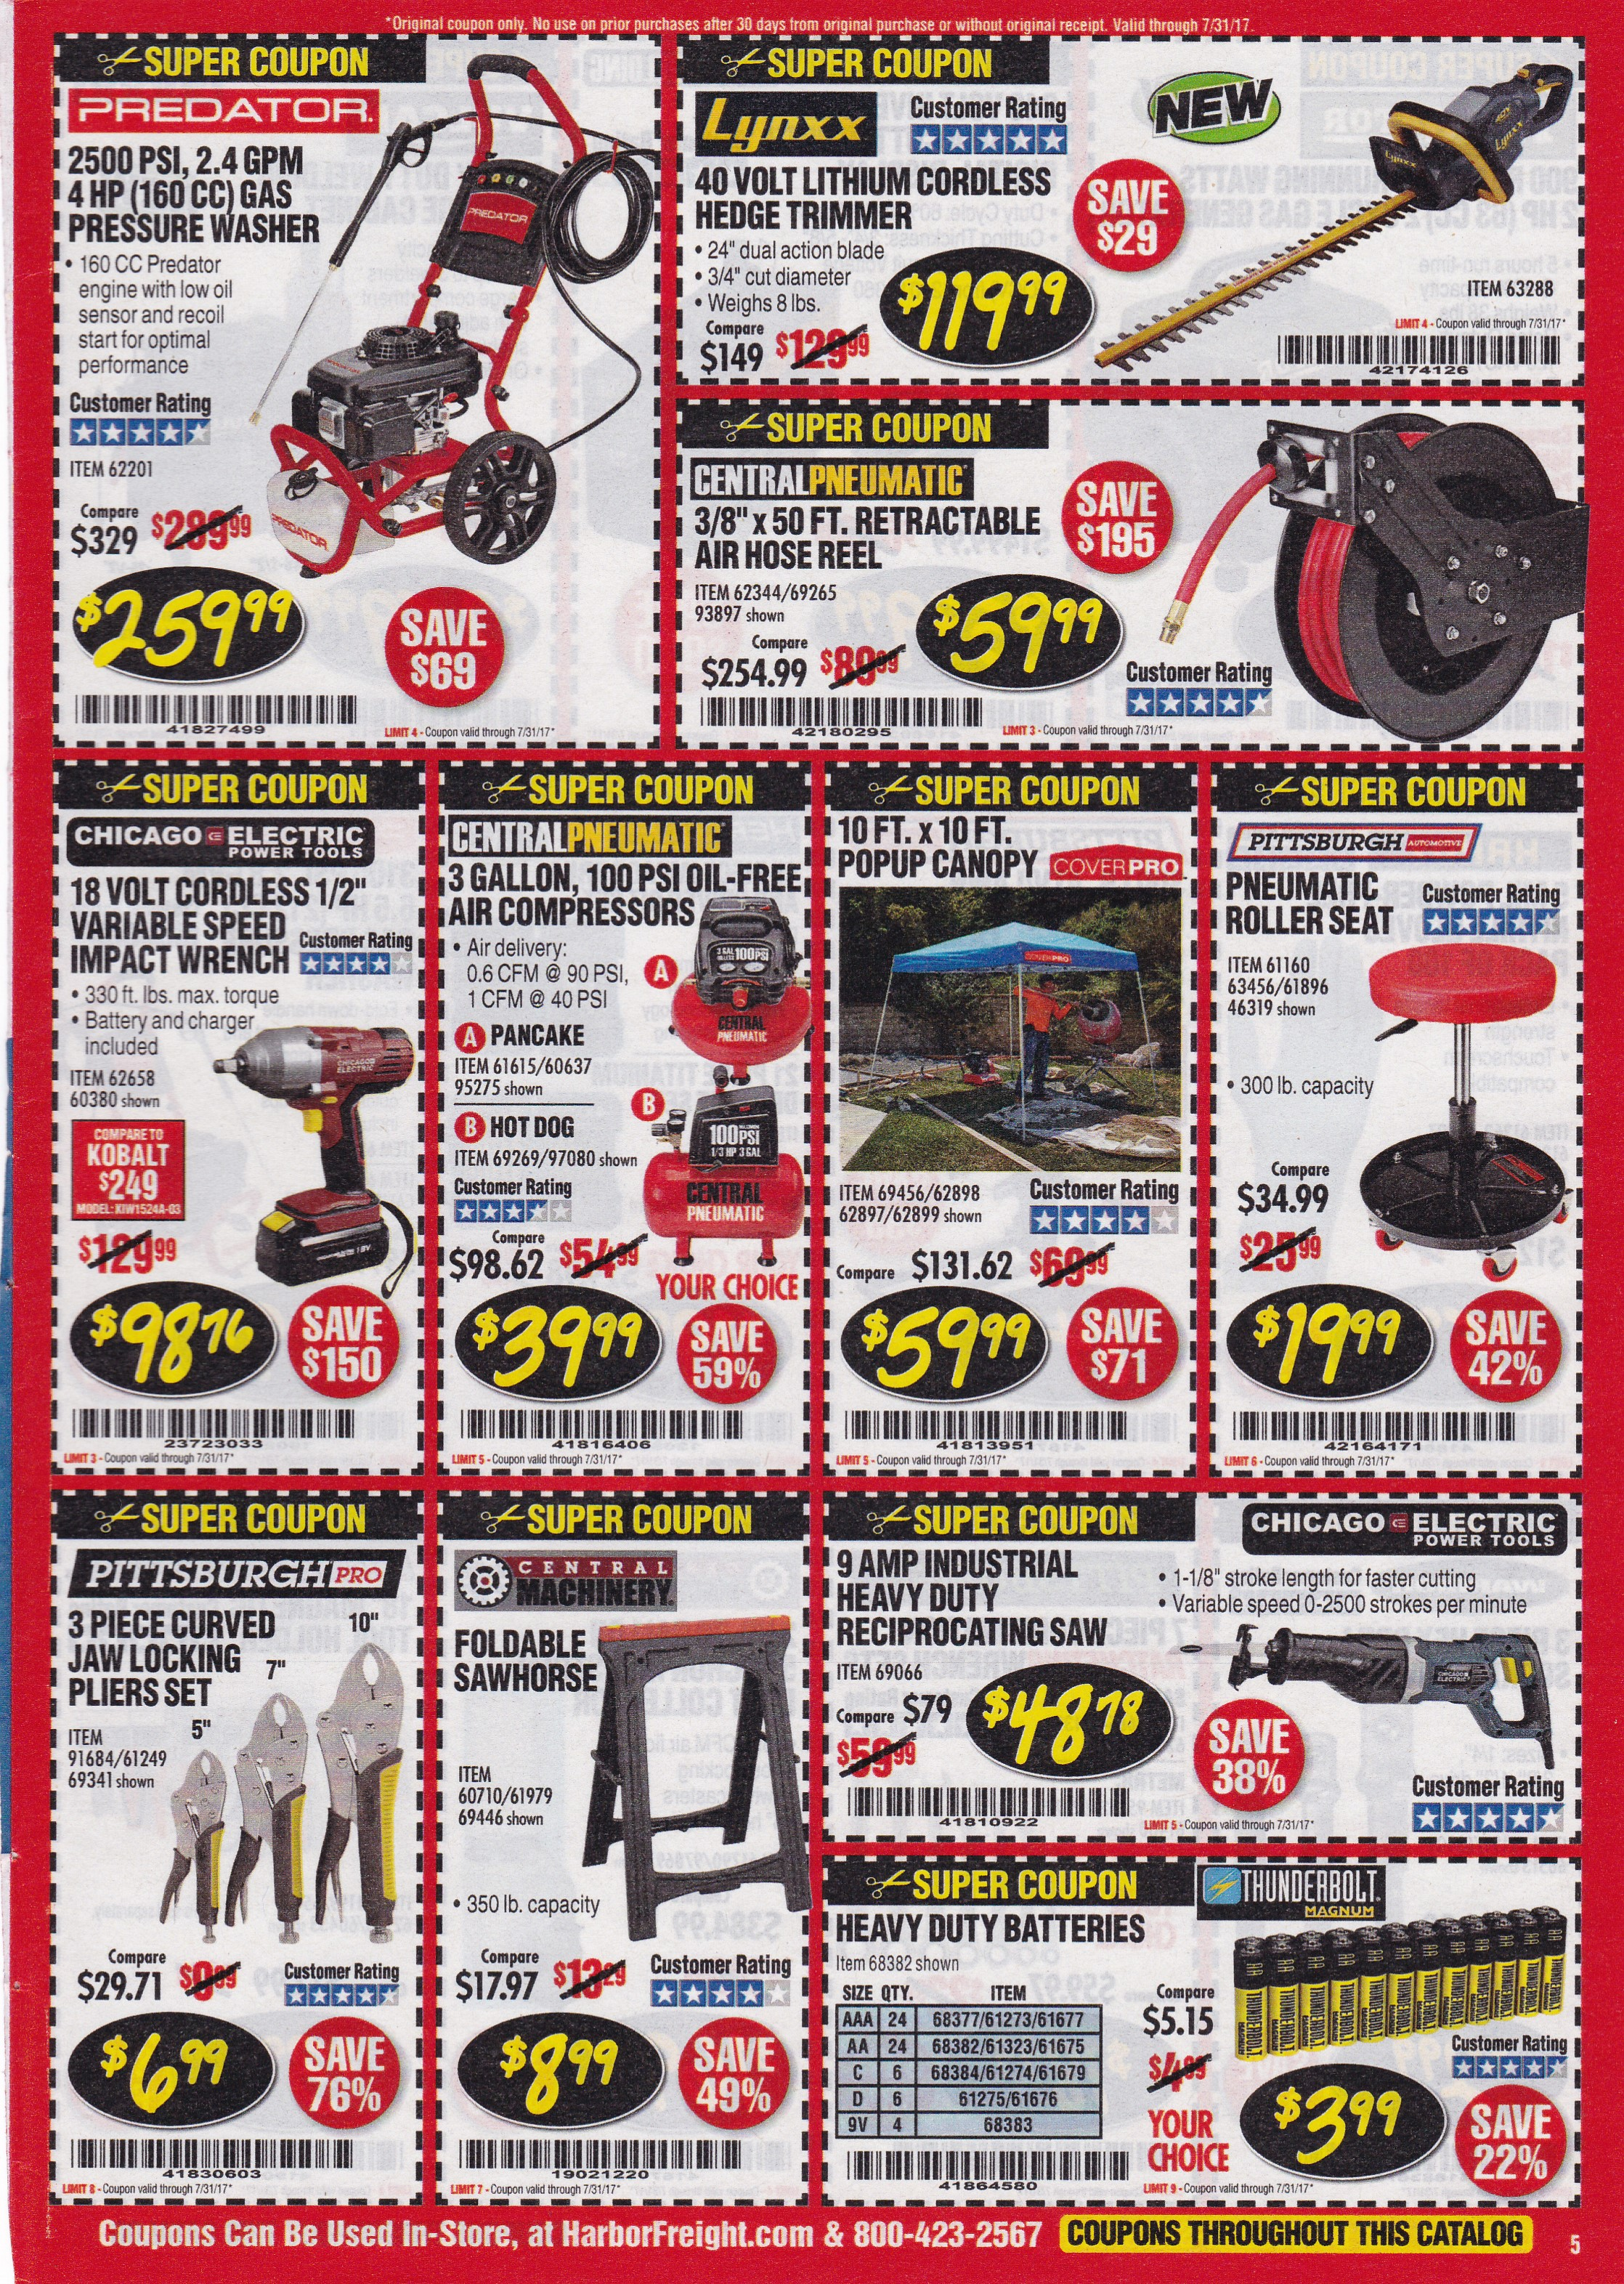 Monthly harbor freight super coupons expiring 73117 struggleville didnt find the coupon you needed use our harbor freight custom search tool to find what you are looking for fandeluxe Gallery